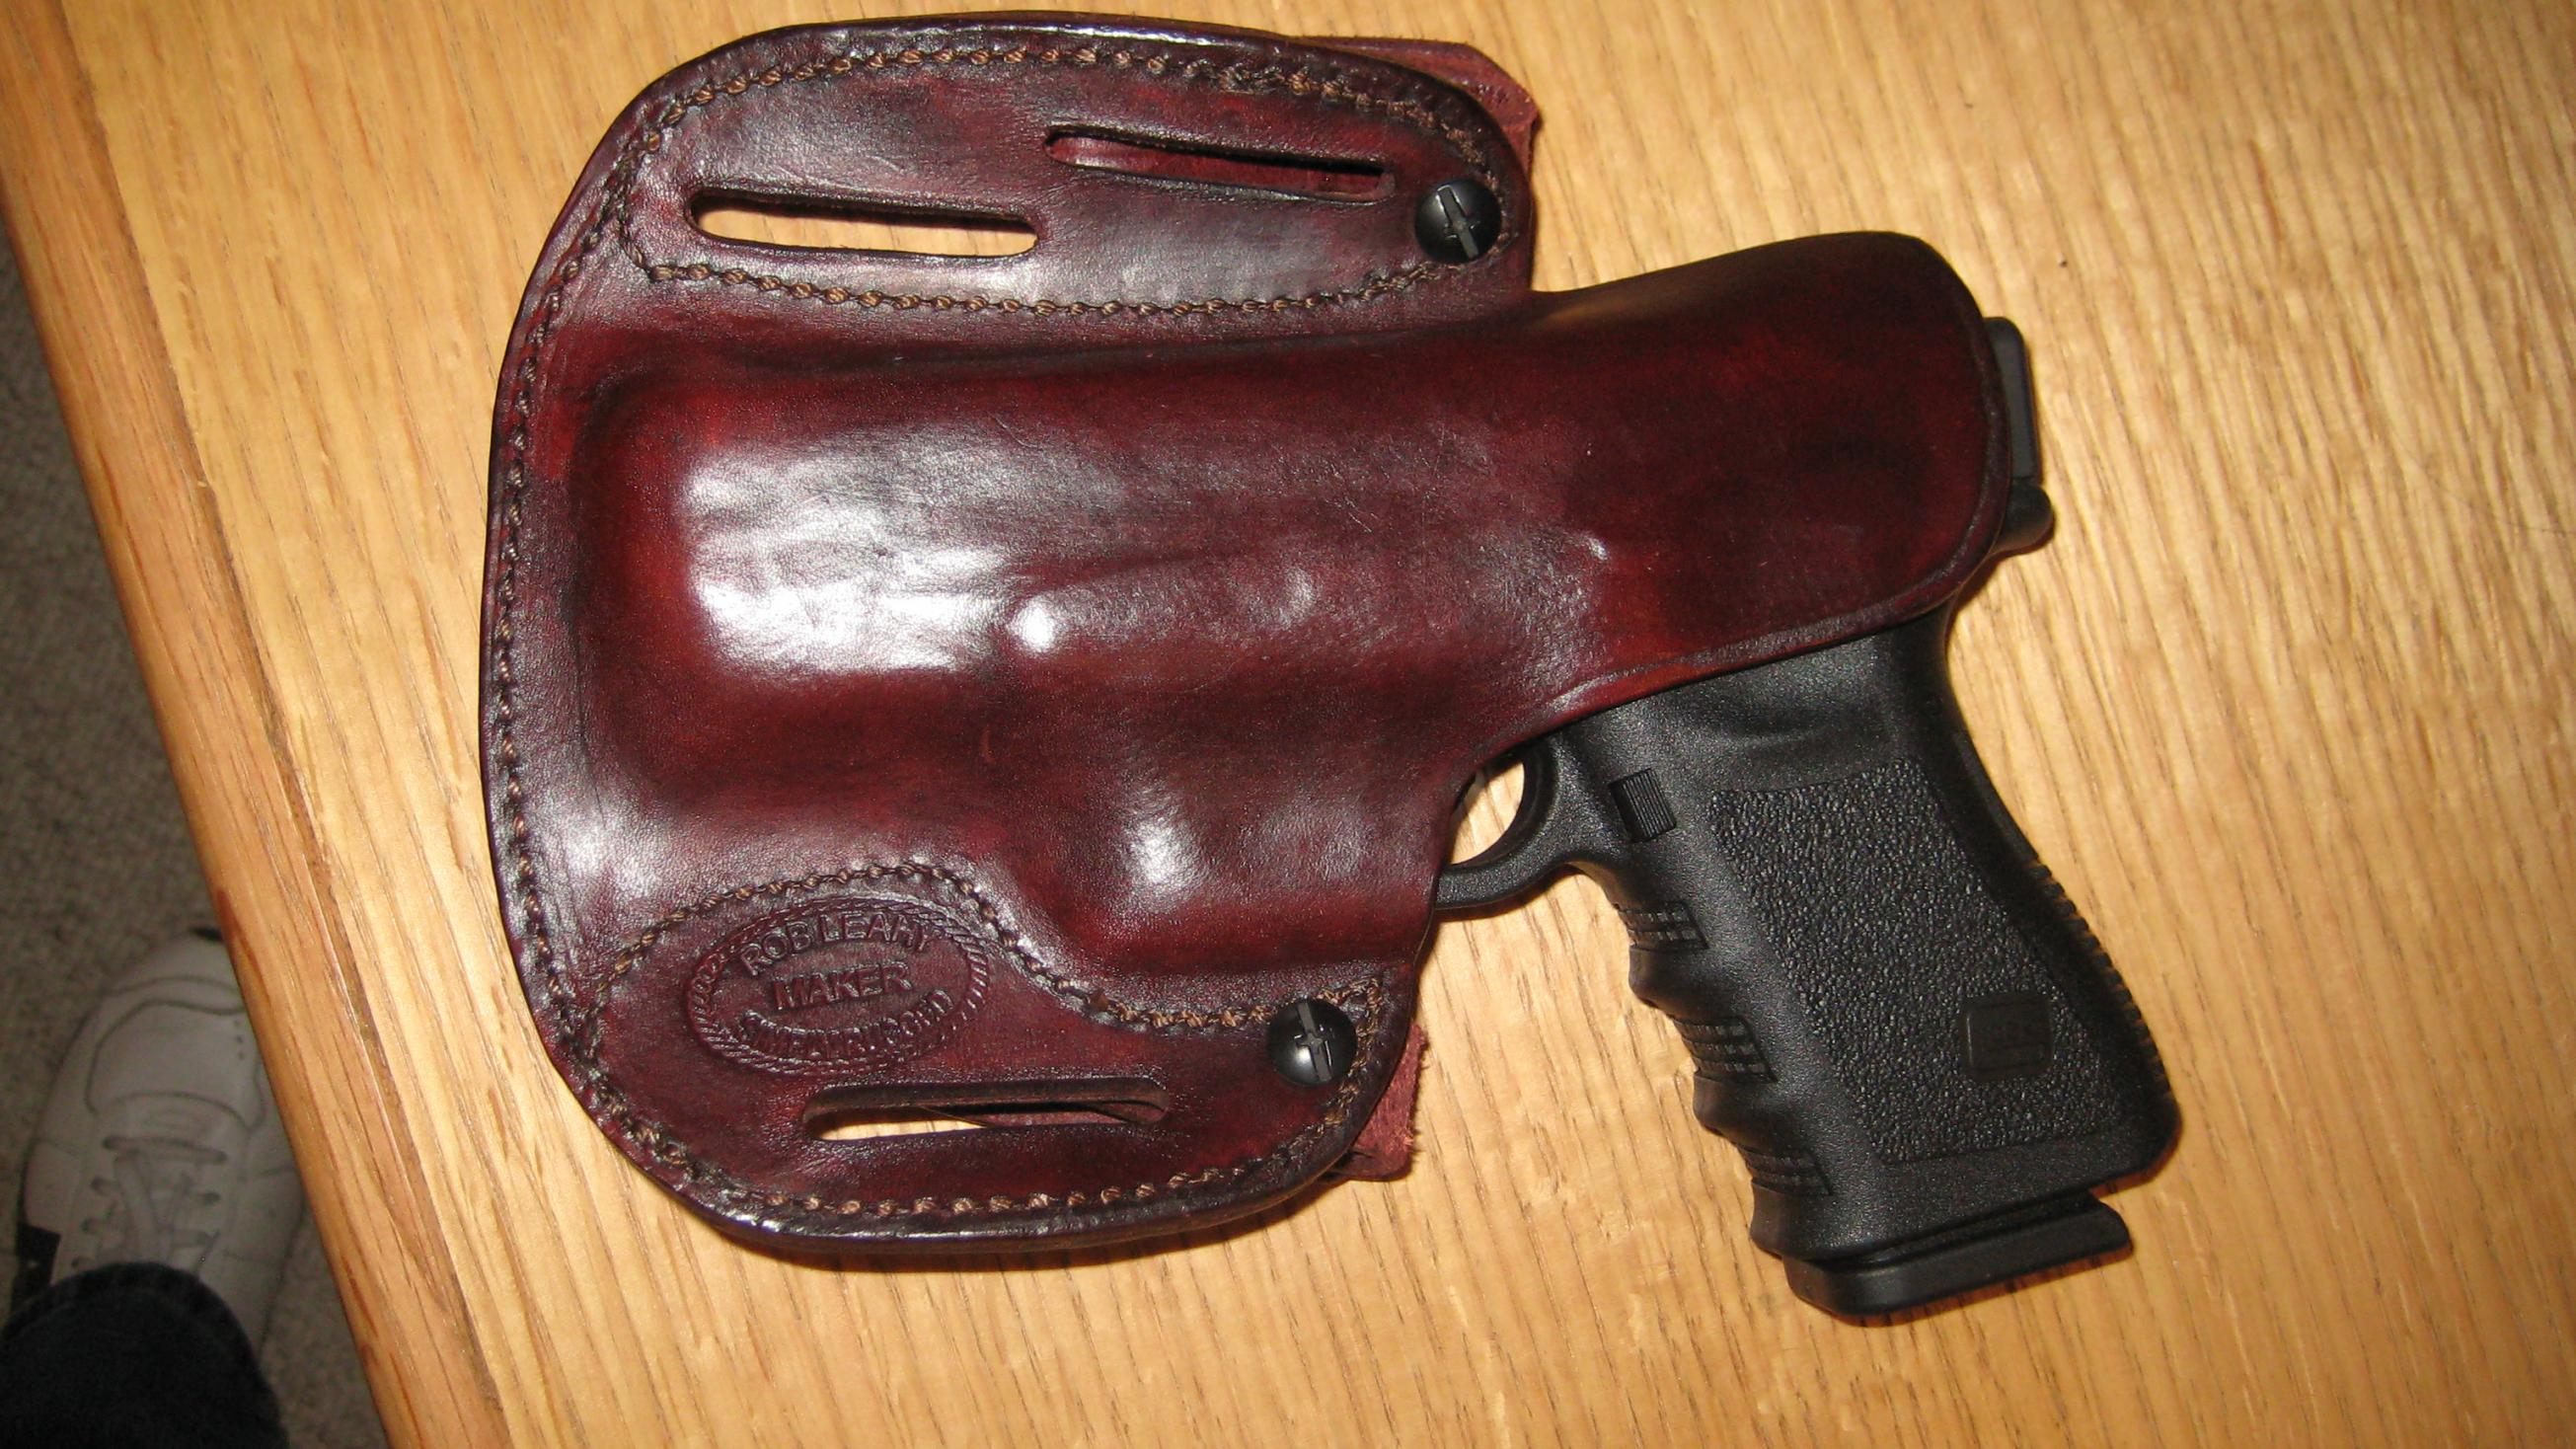 small carry conceal handguns. 9mm or .380 , Why you carry one over the other ?-img_0717-1-.jpg